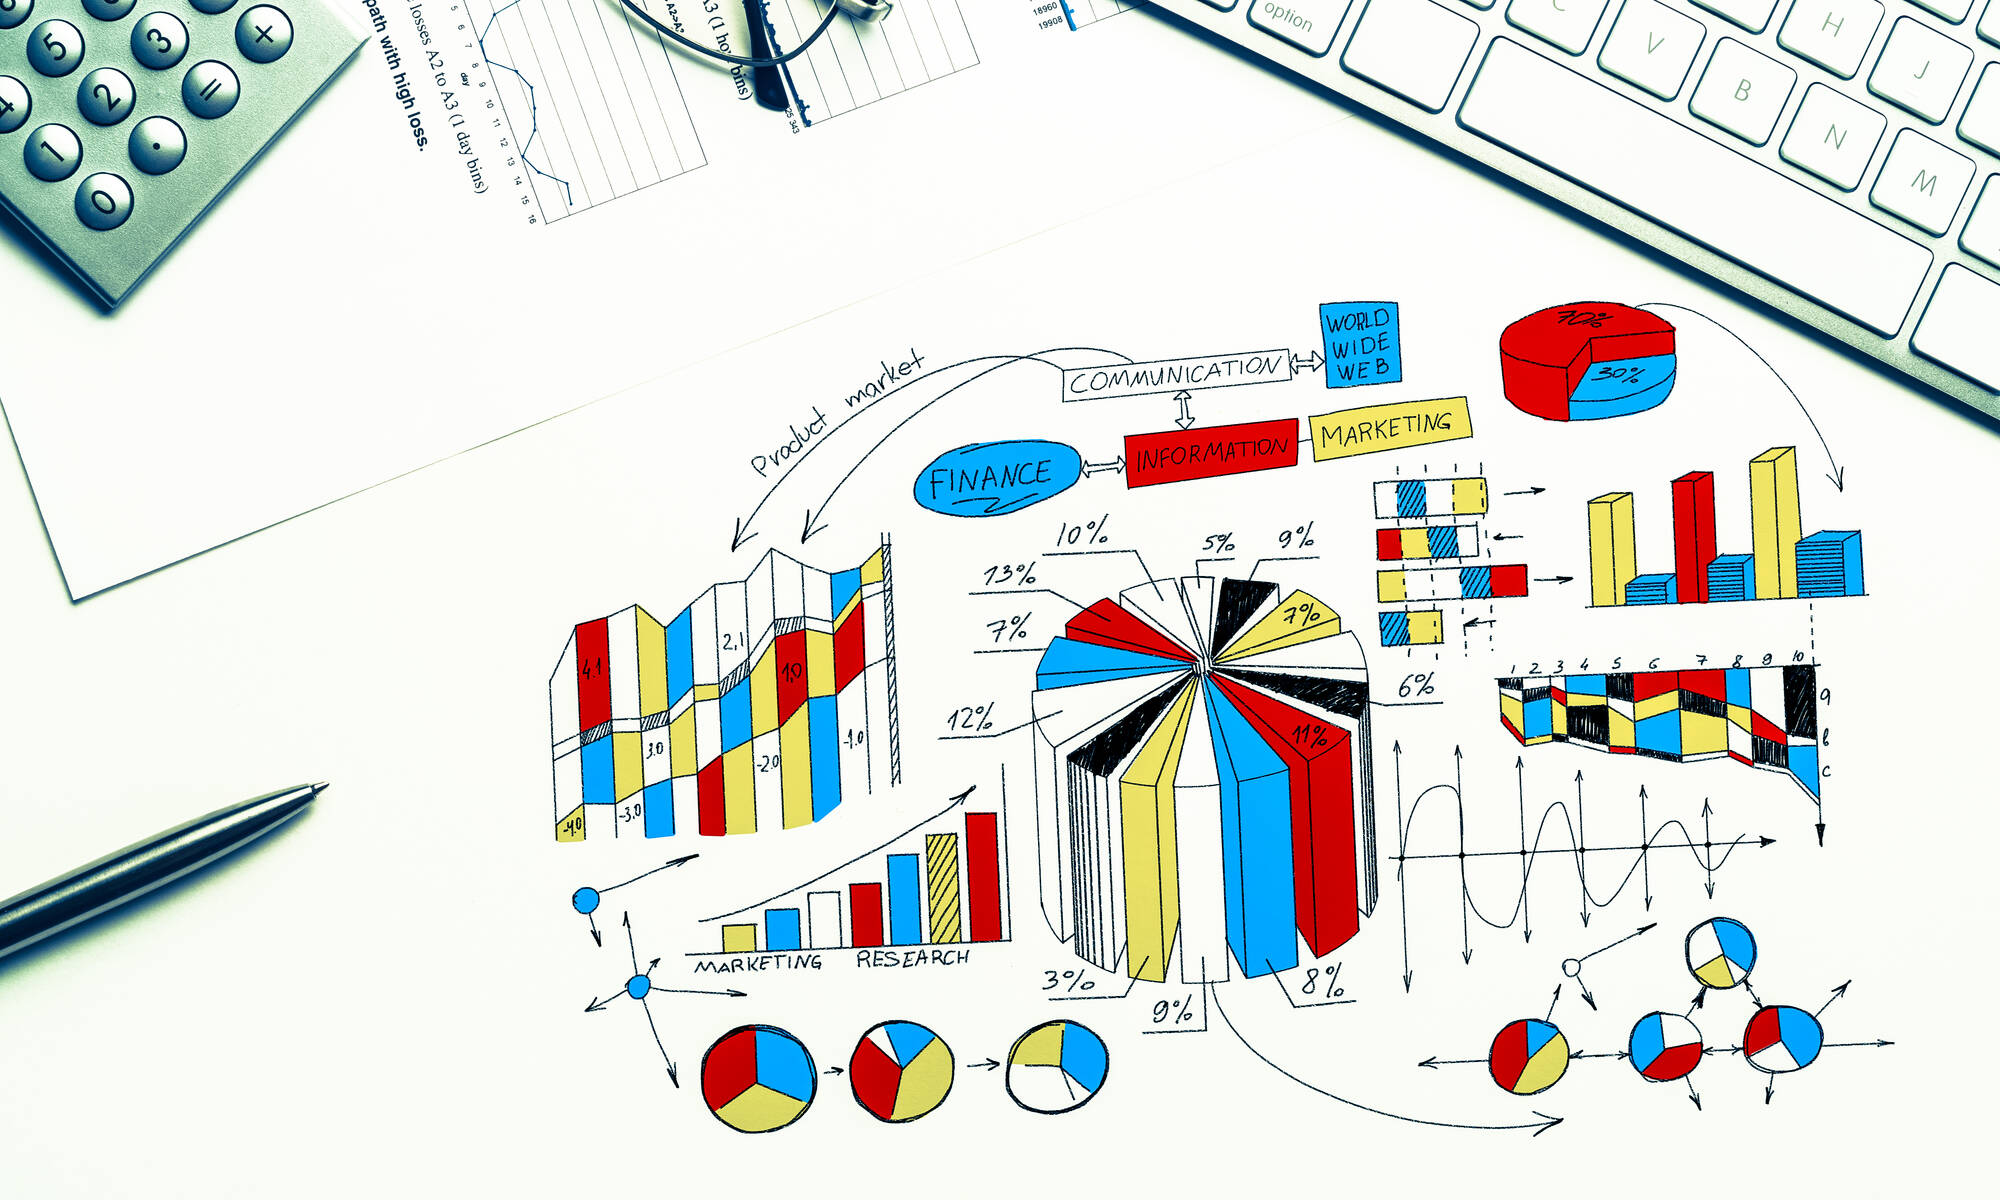 CRM planning and improvement